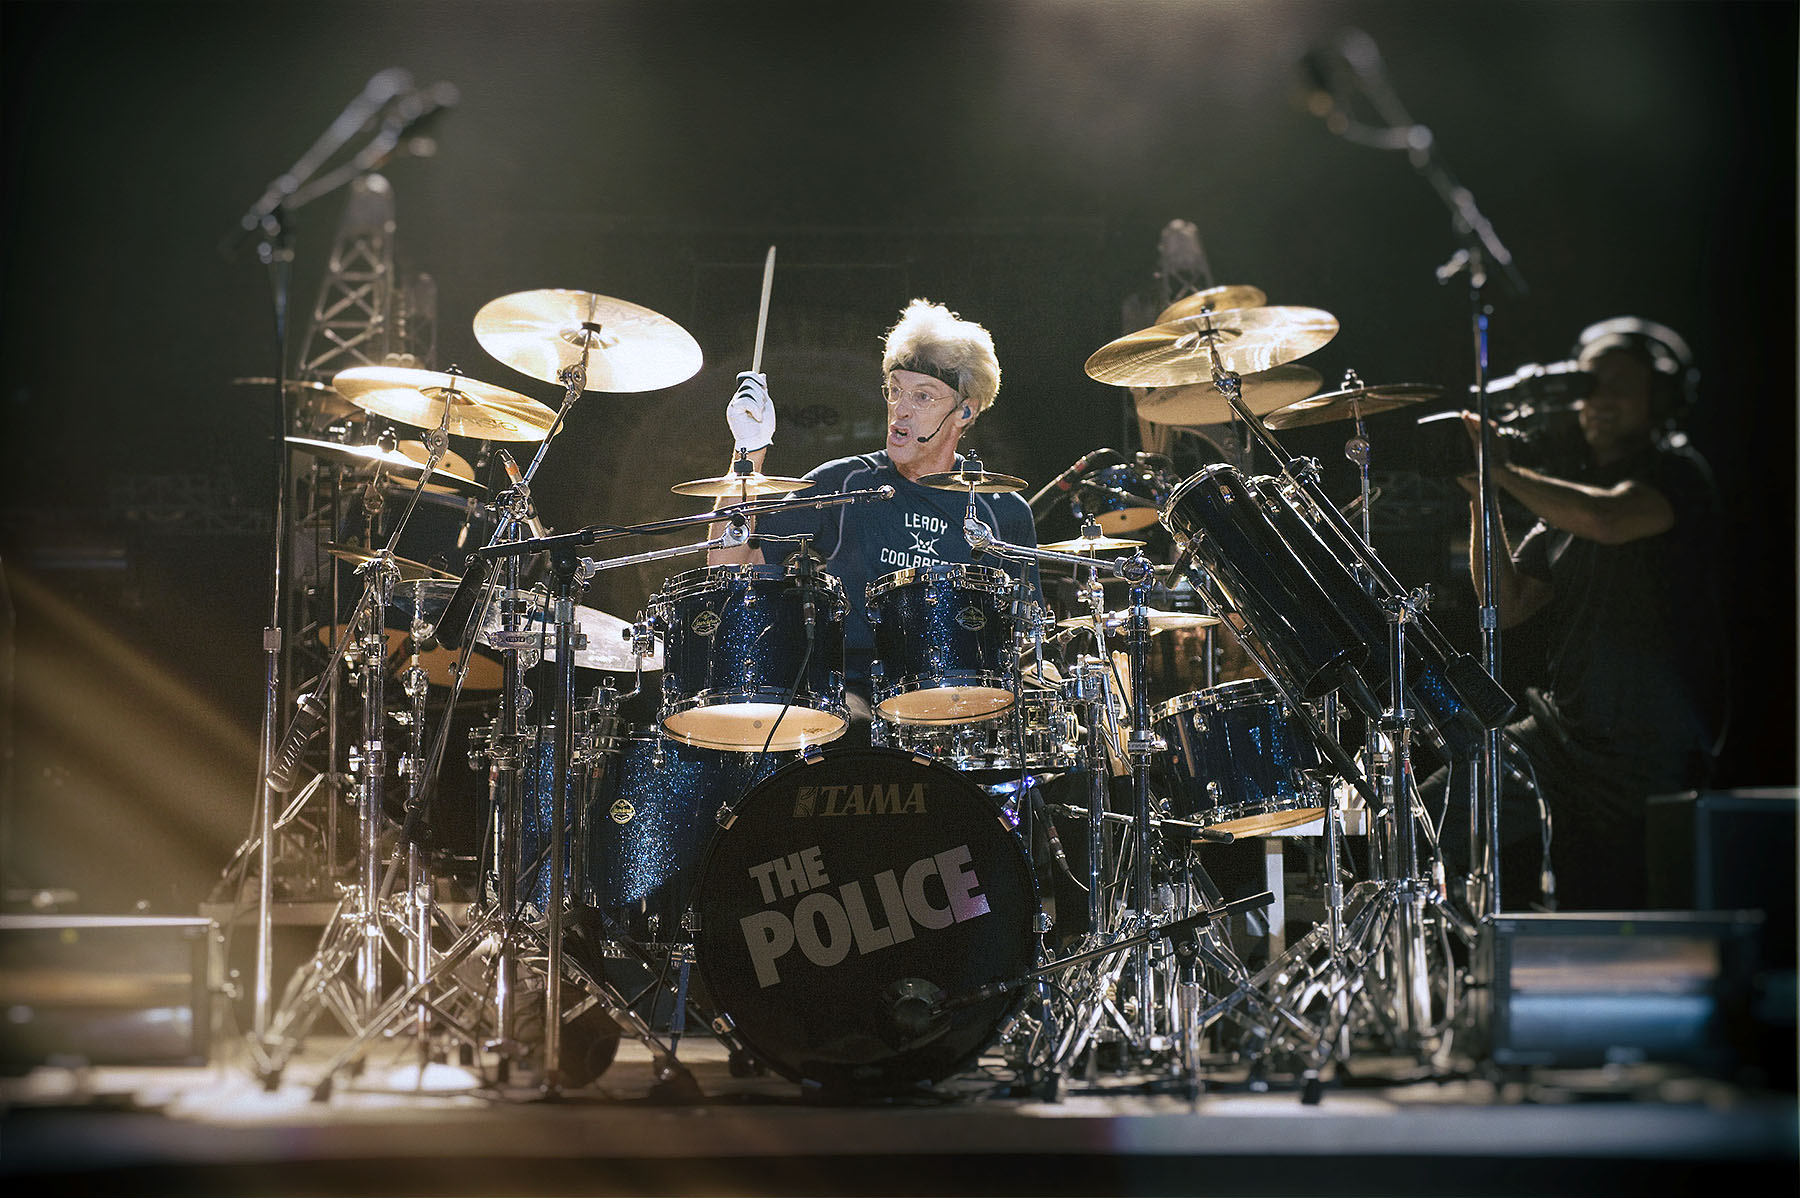 Stewarrt_Copeland_The_Police_Jerome_Brunet